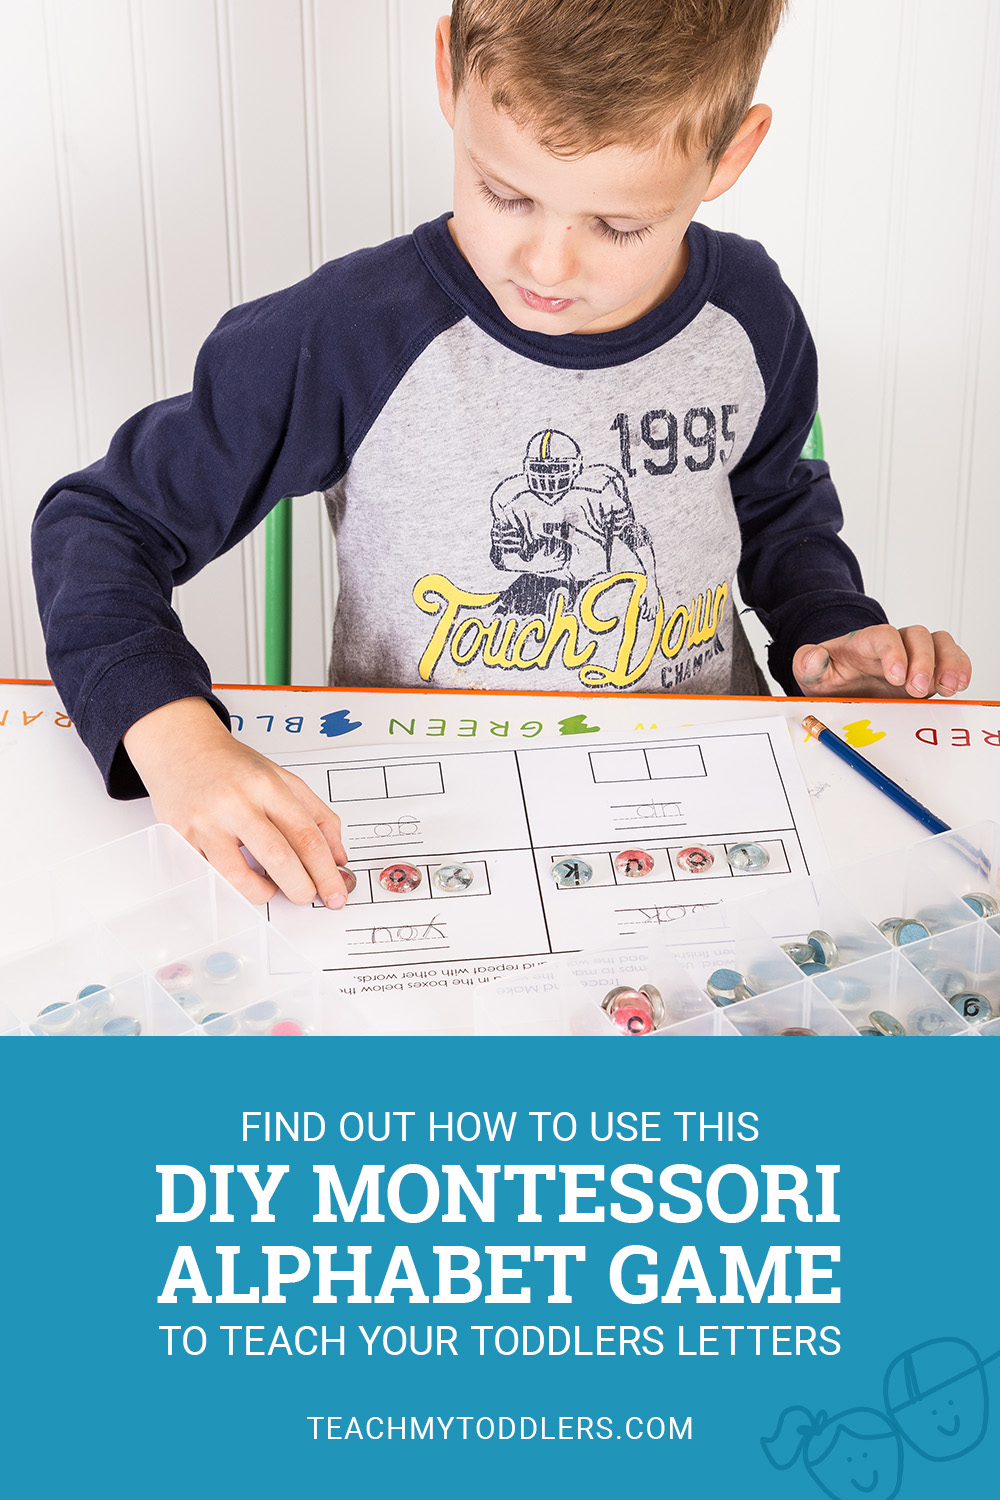 Find out how to use this diy montessori alphabet game to teach your toddlers letters